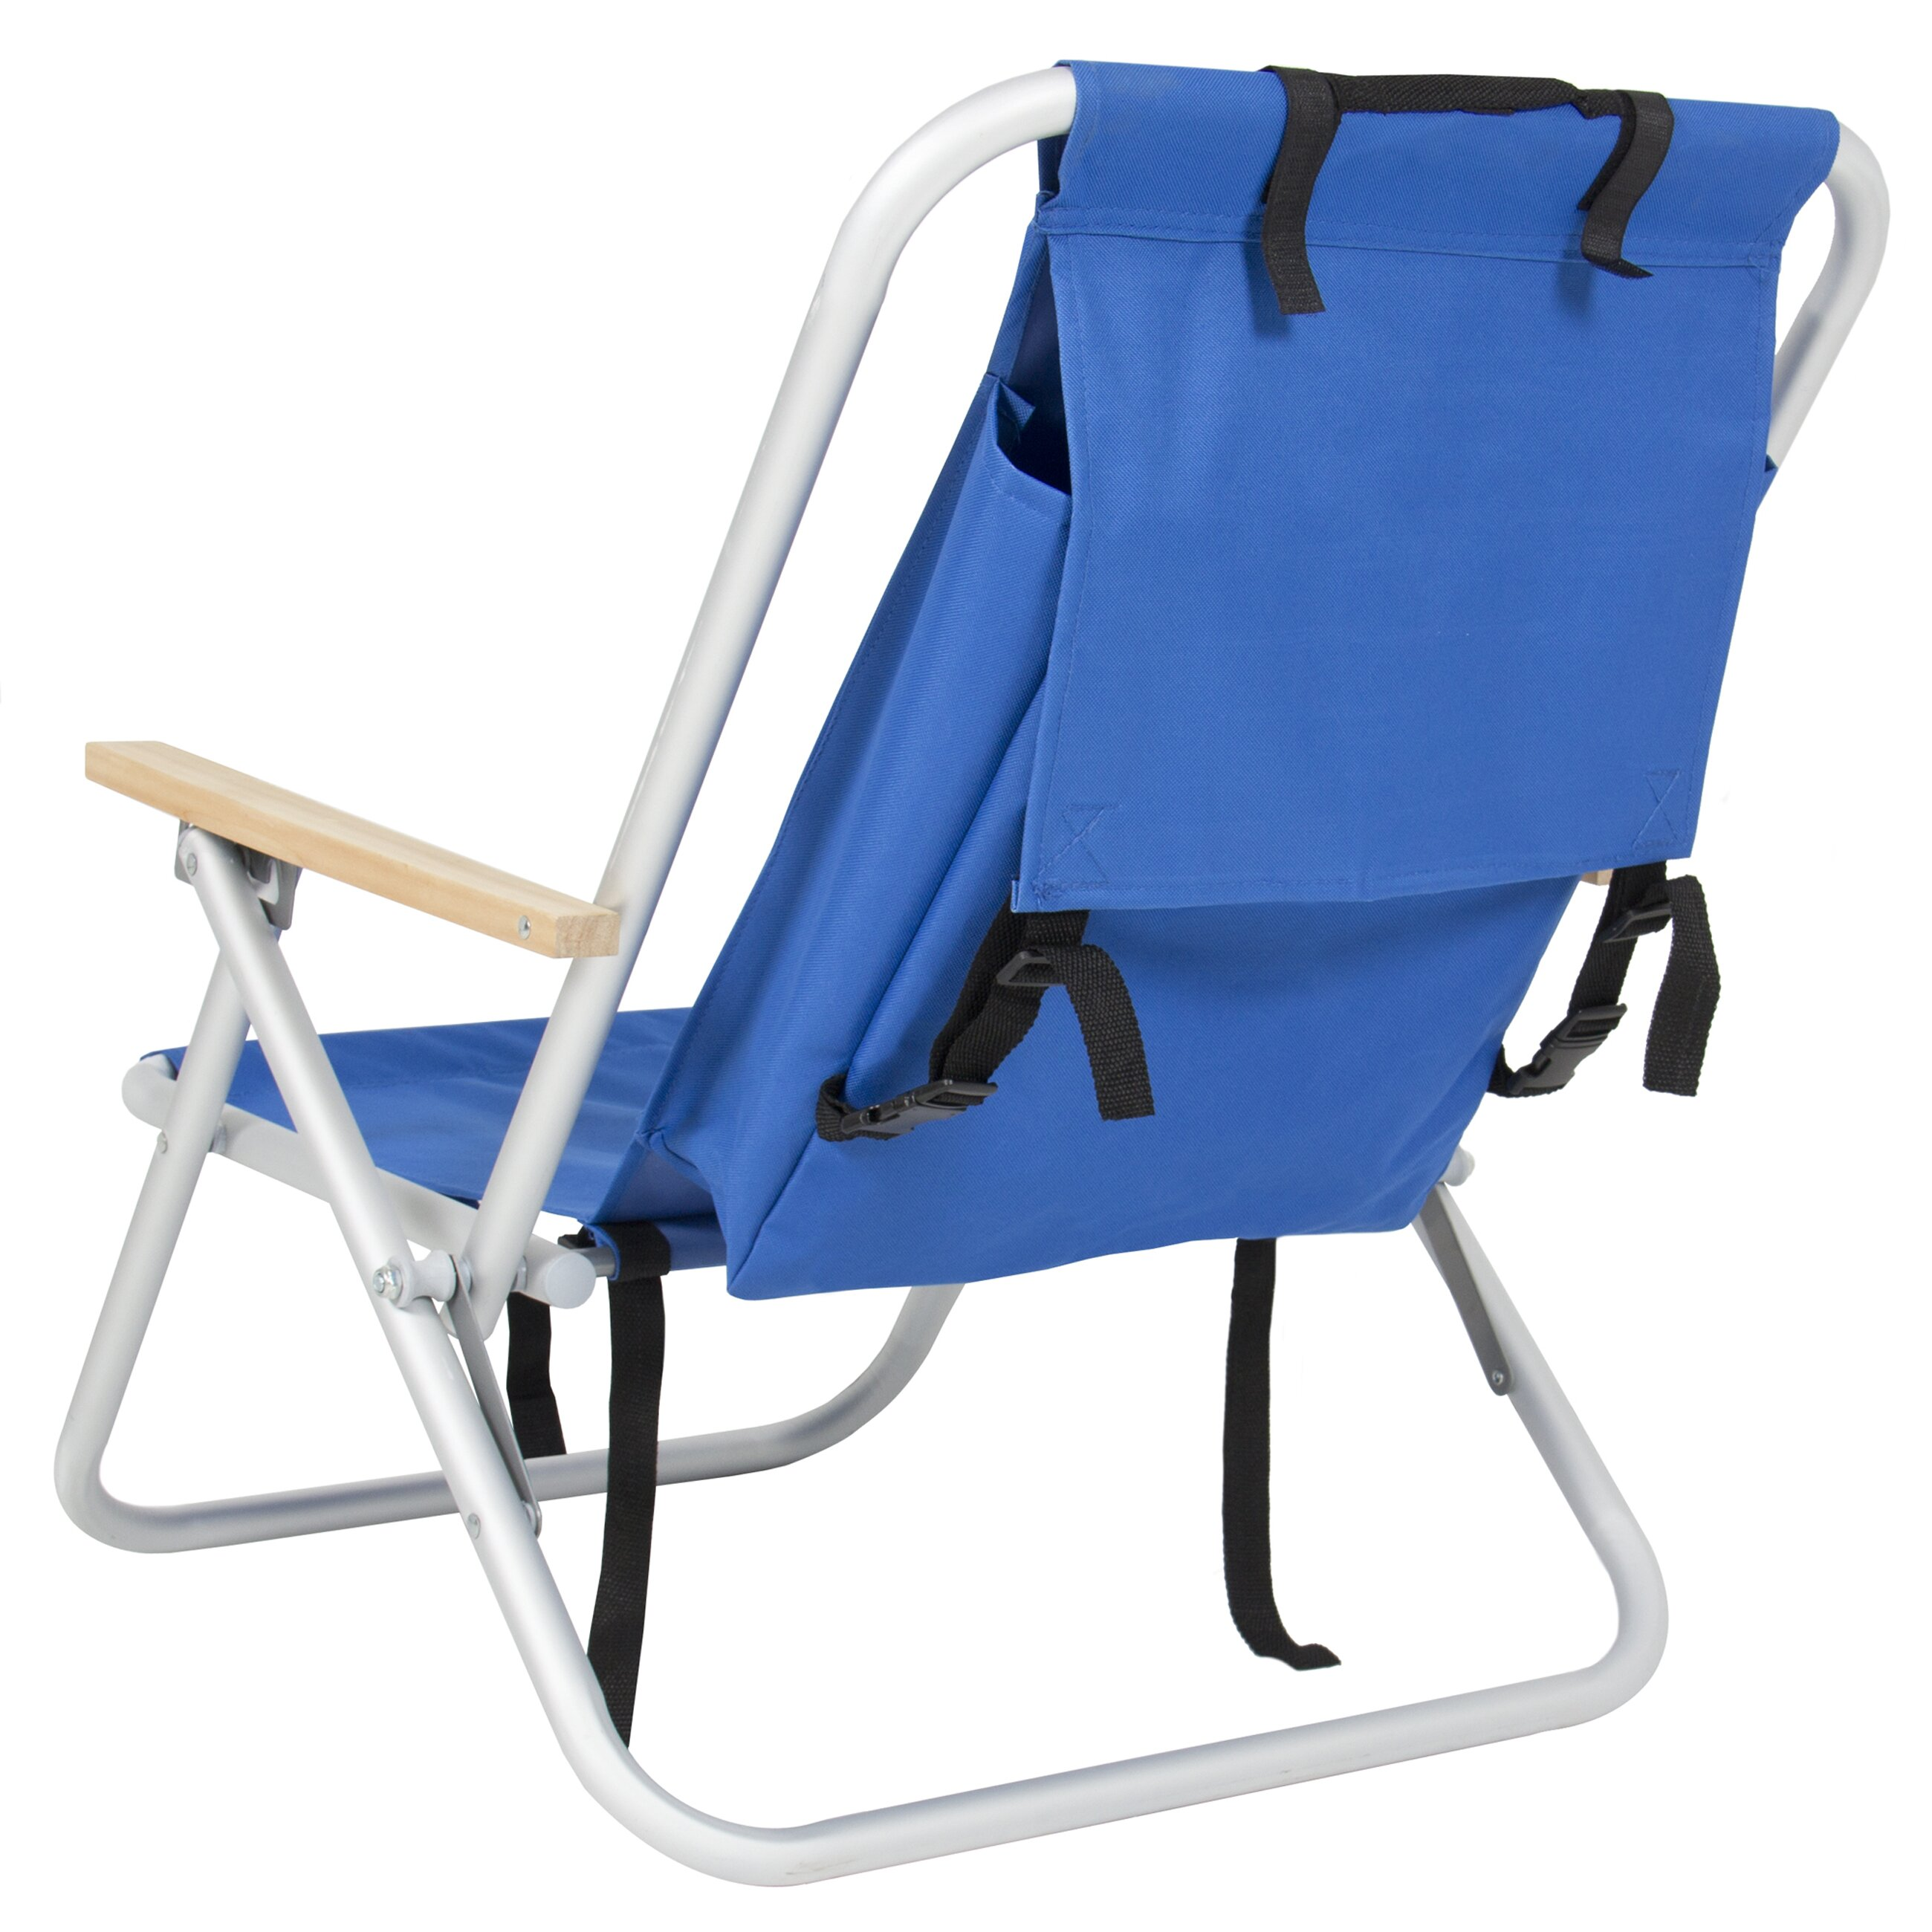 Collapsible Beach Chair | Tri Fold Beach Chair | Small Folding Beach Chairs